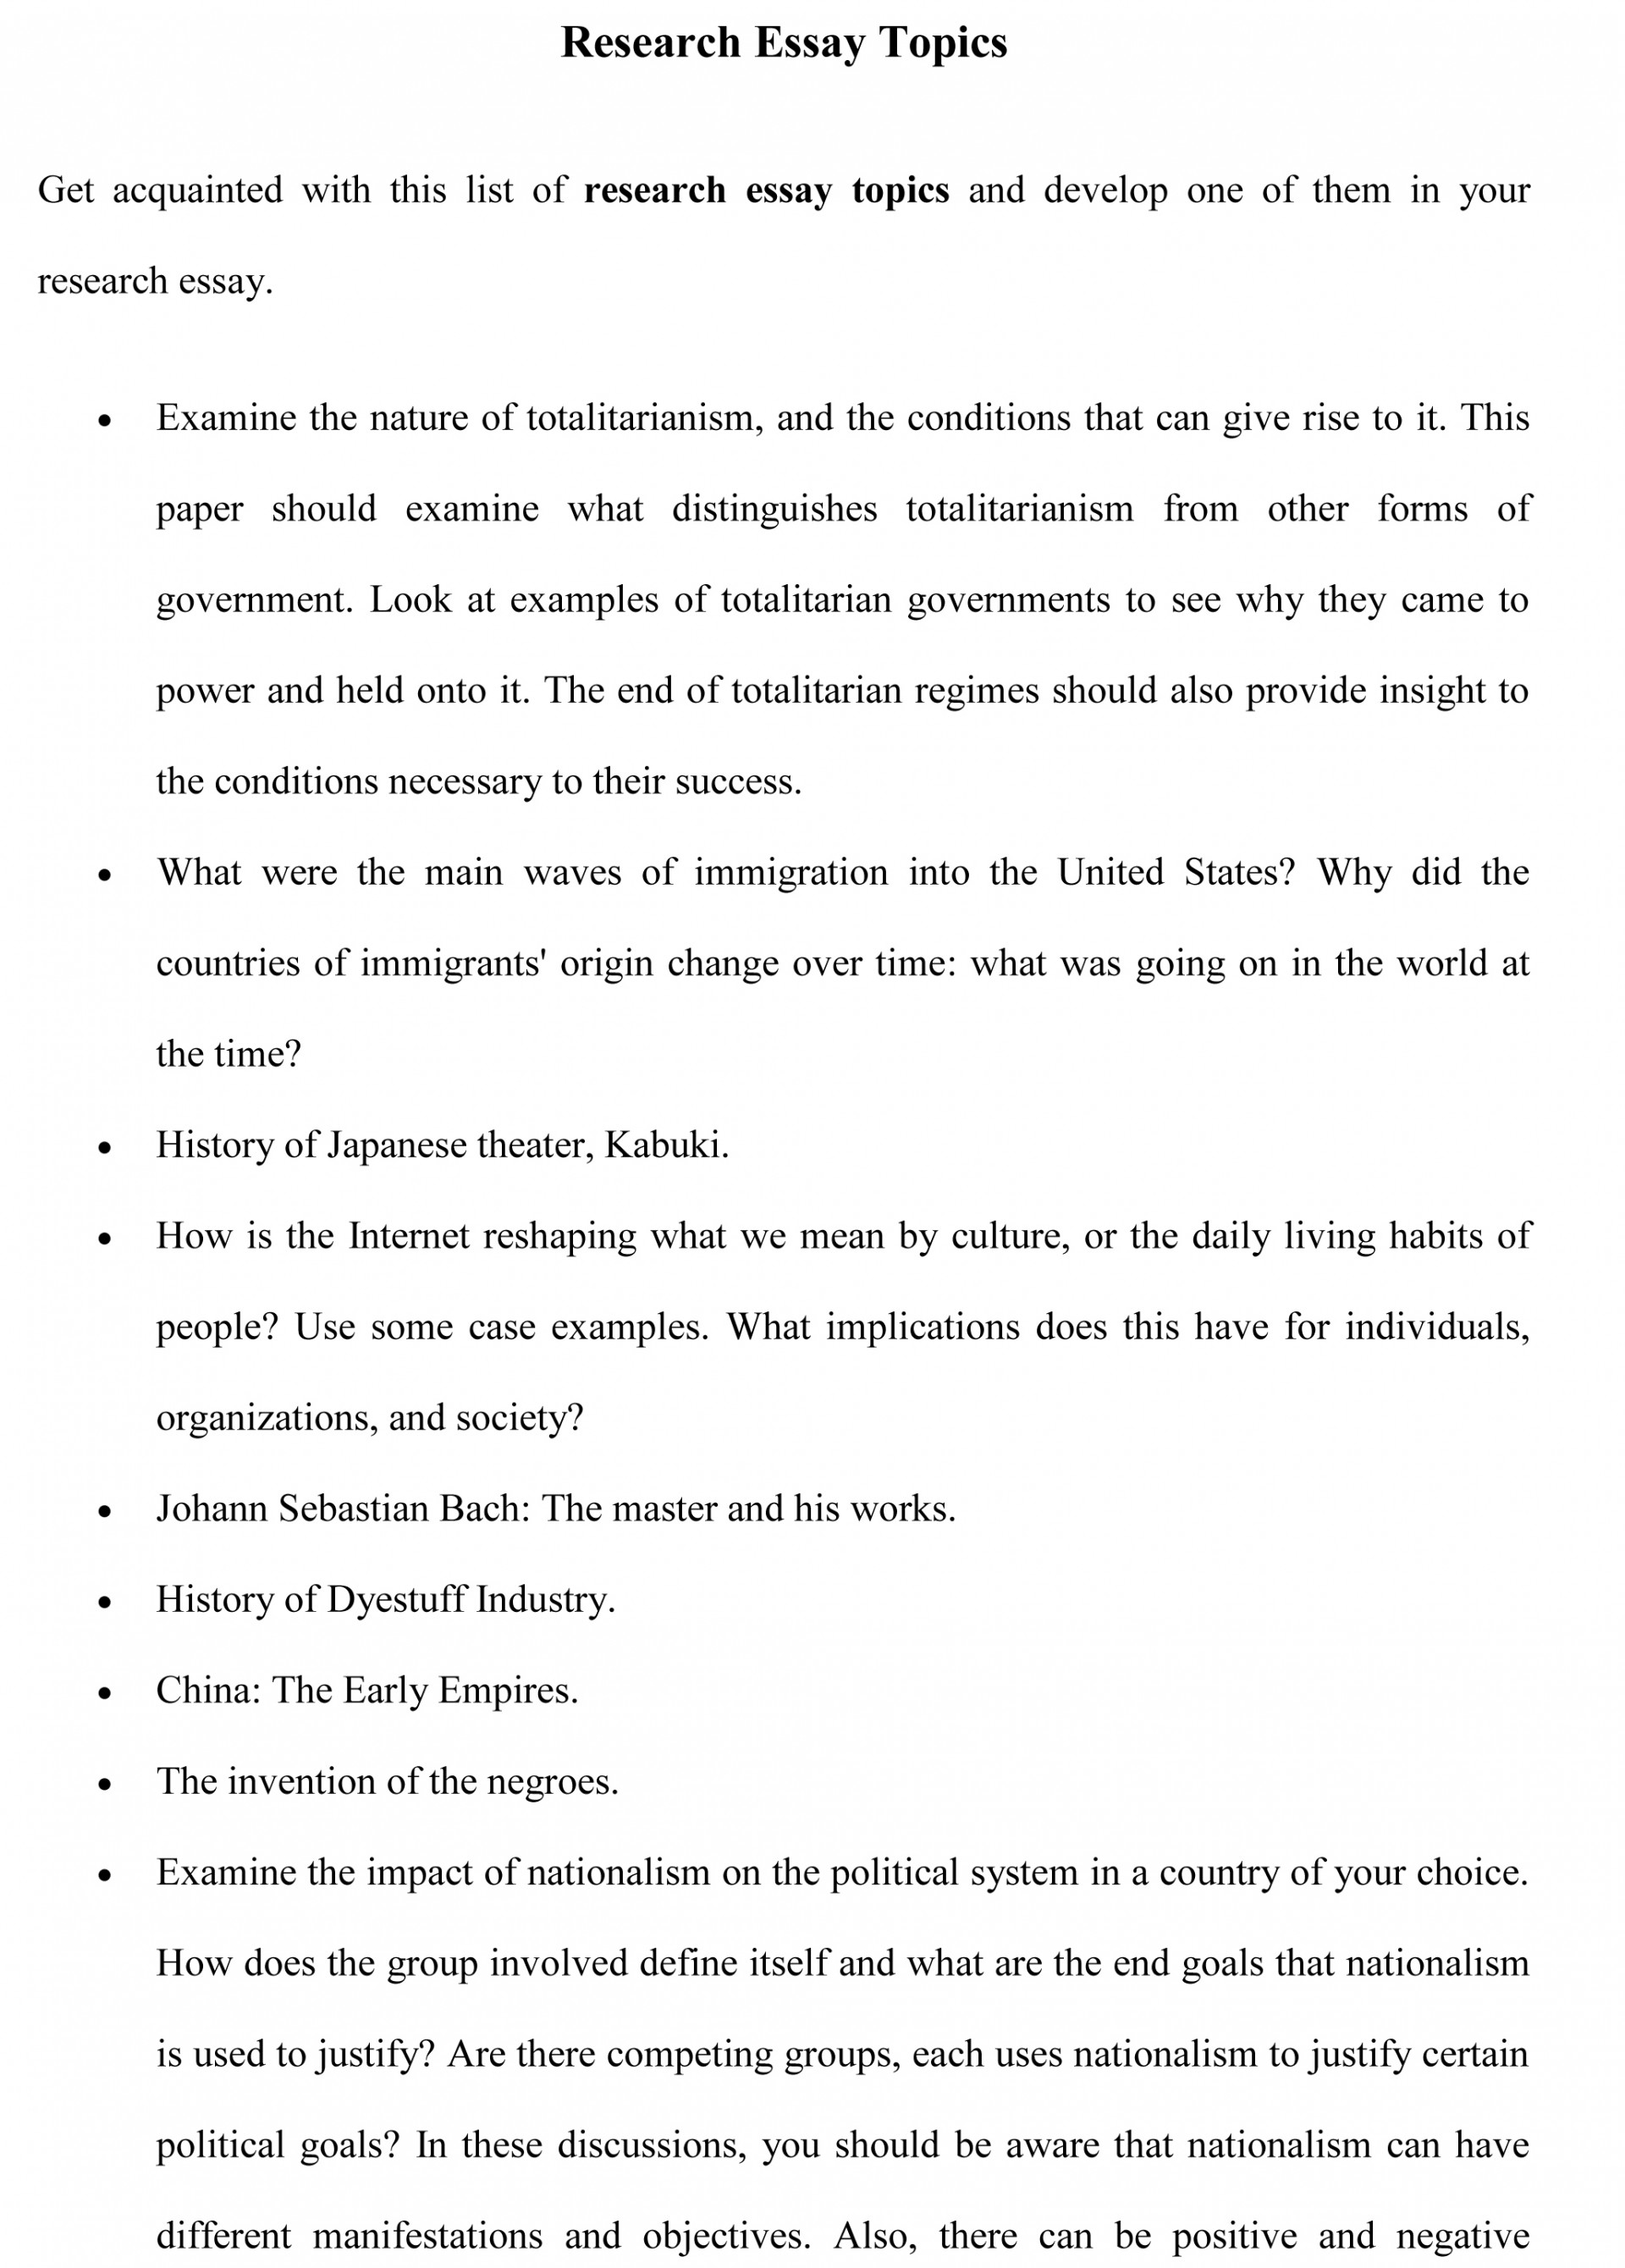 005 Research Paper Business Topics Essay Striking Ethics Law And 1920